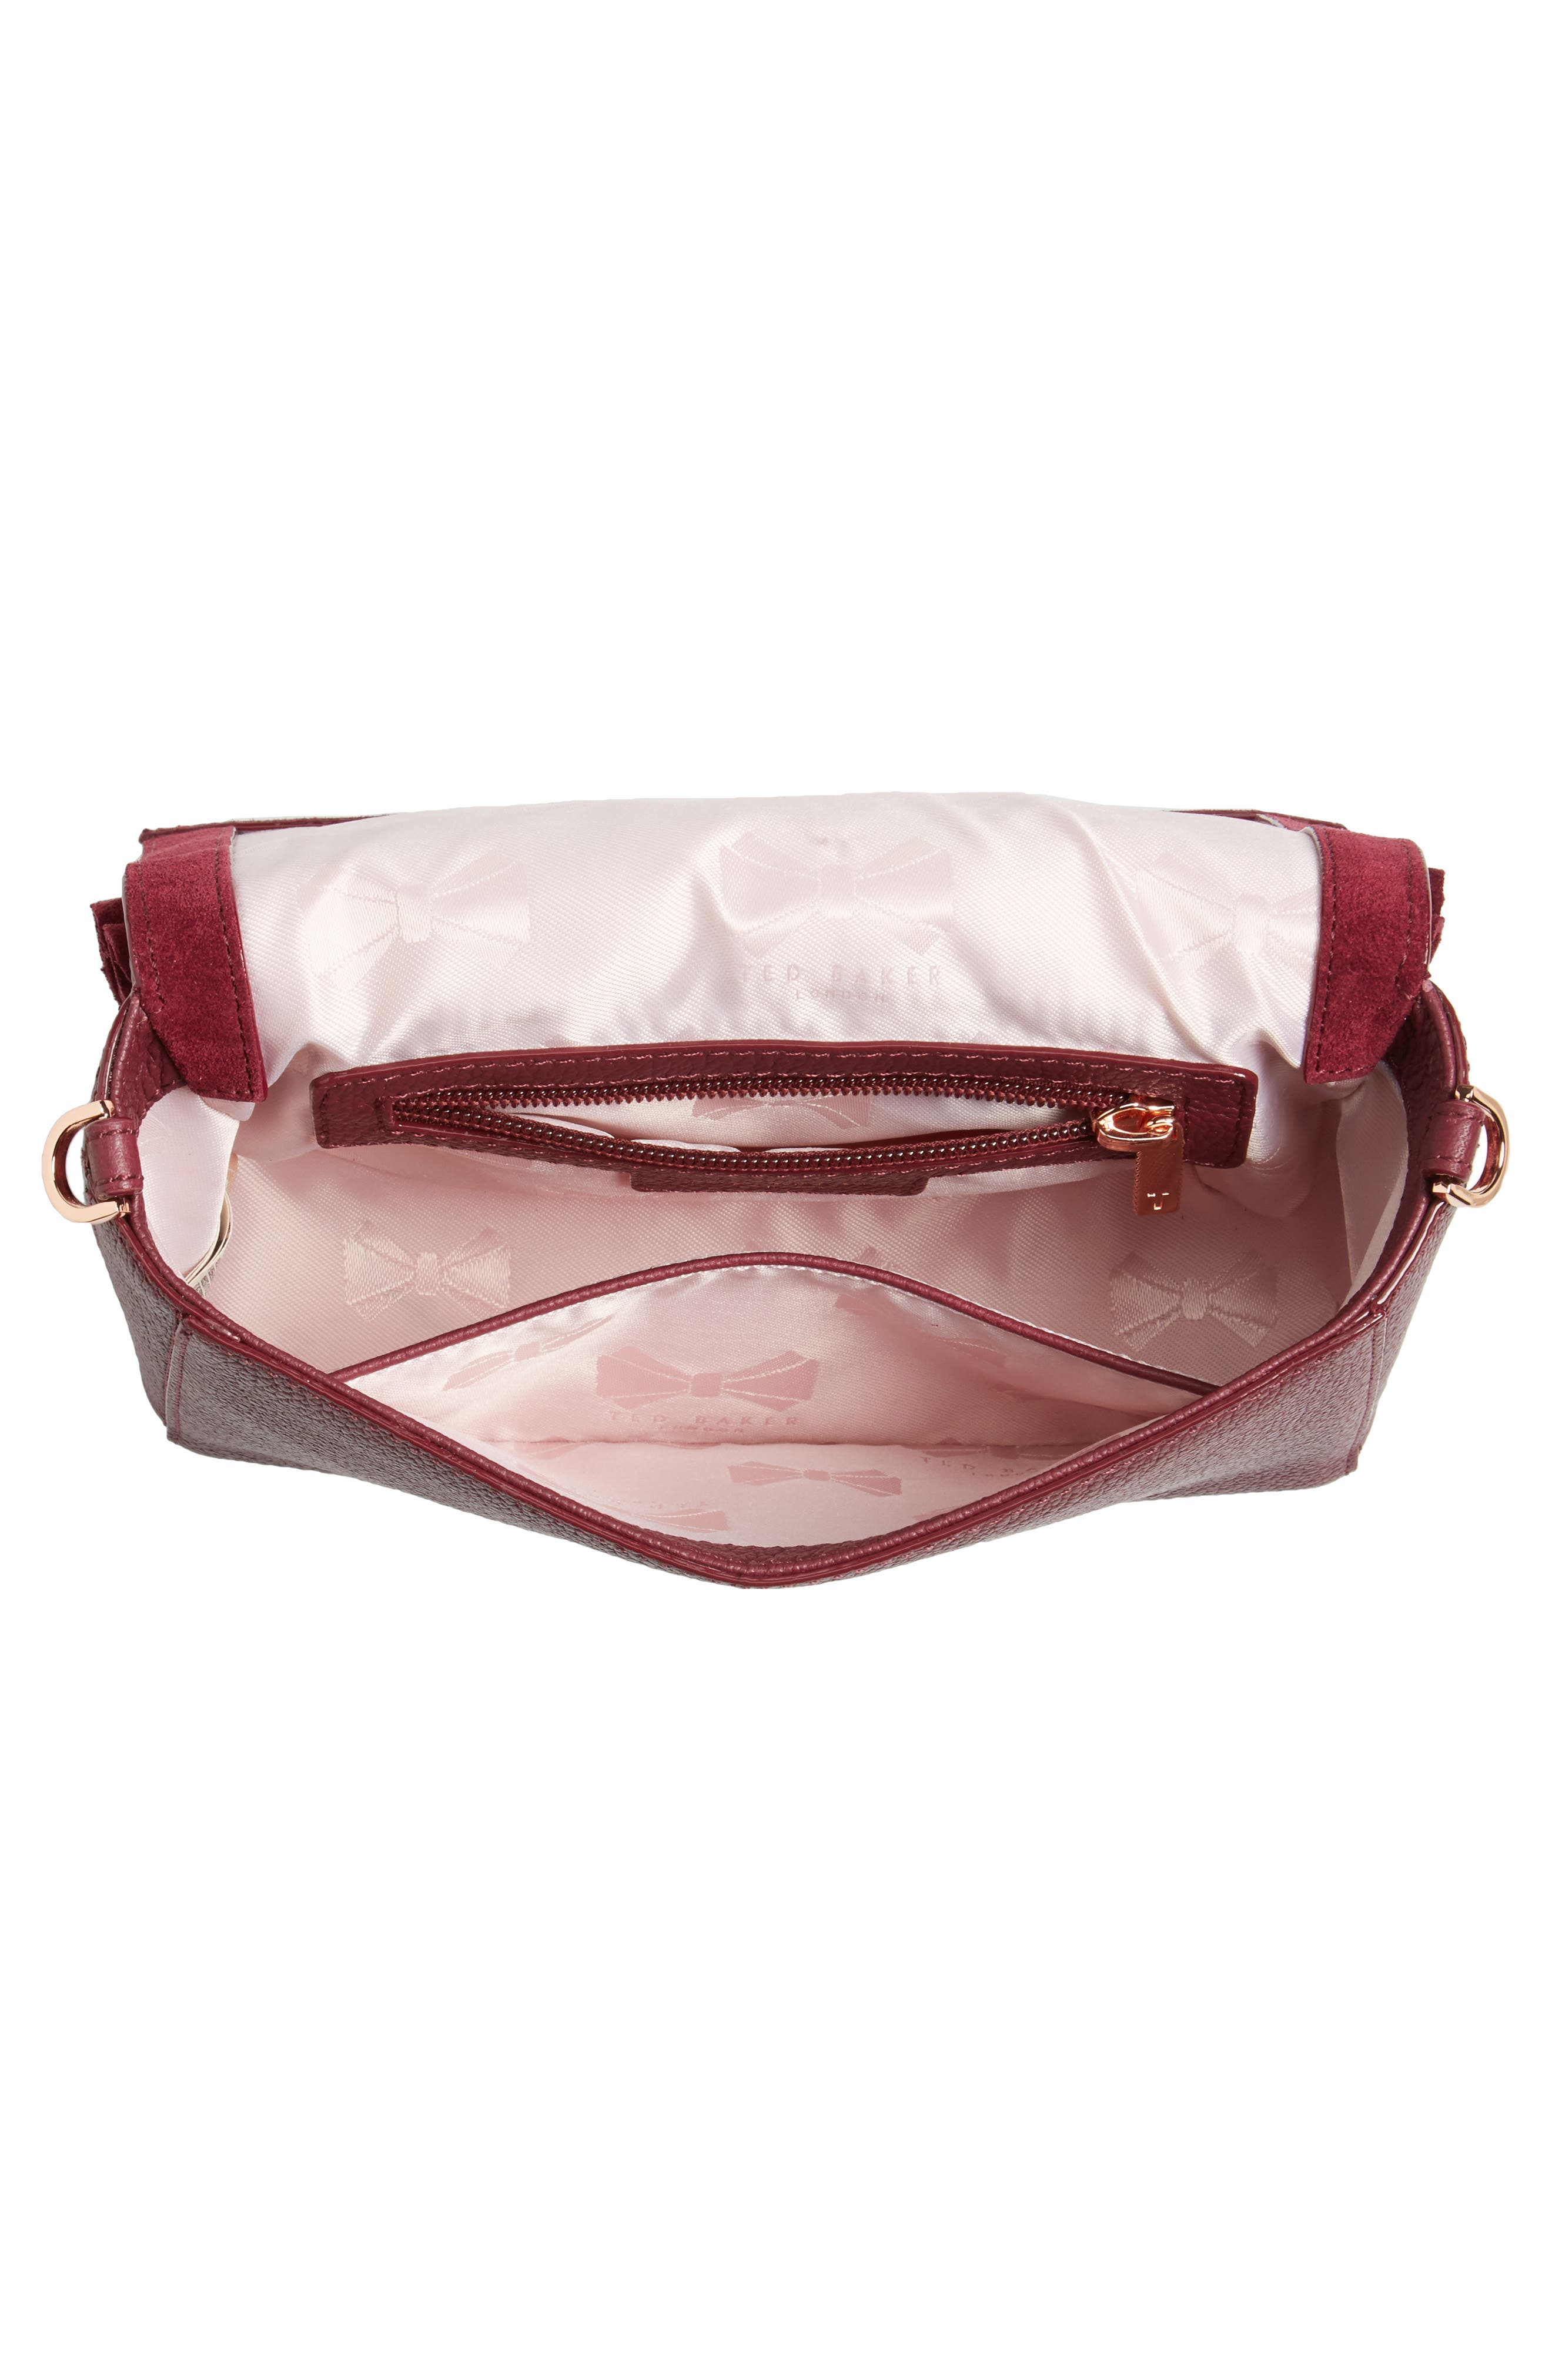 Nerinee Bow Buckle Clutch,                             Alternate thumbnail 11, color,